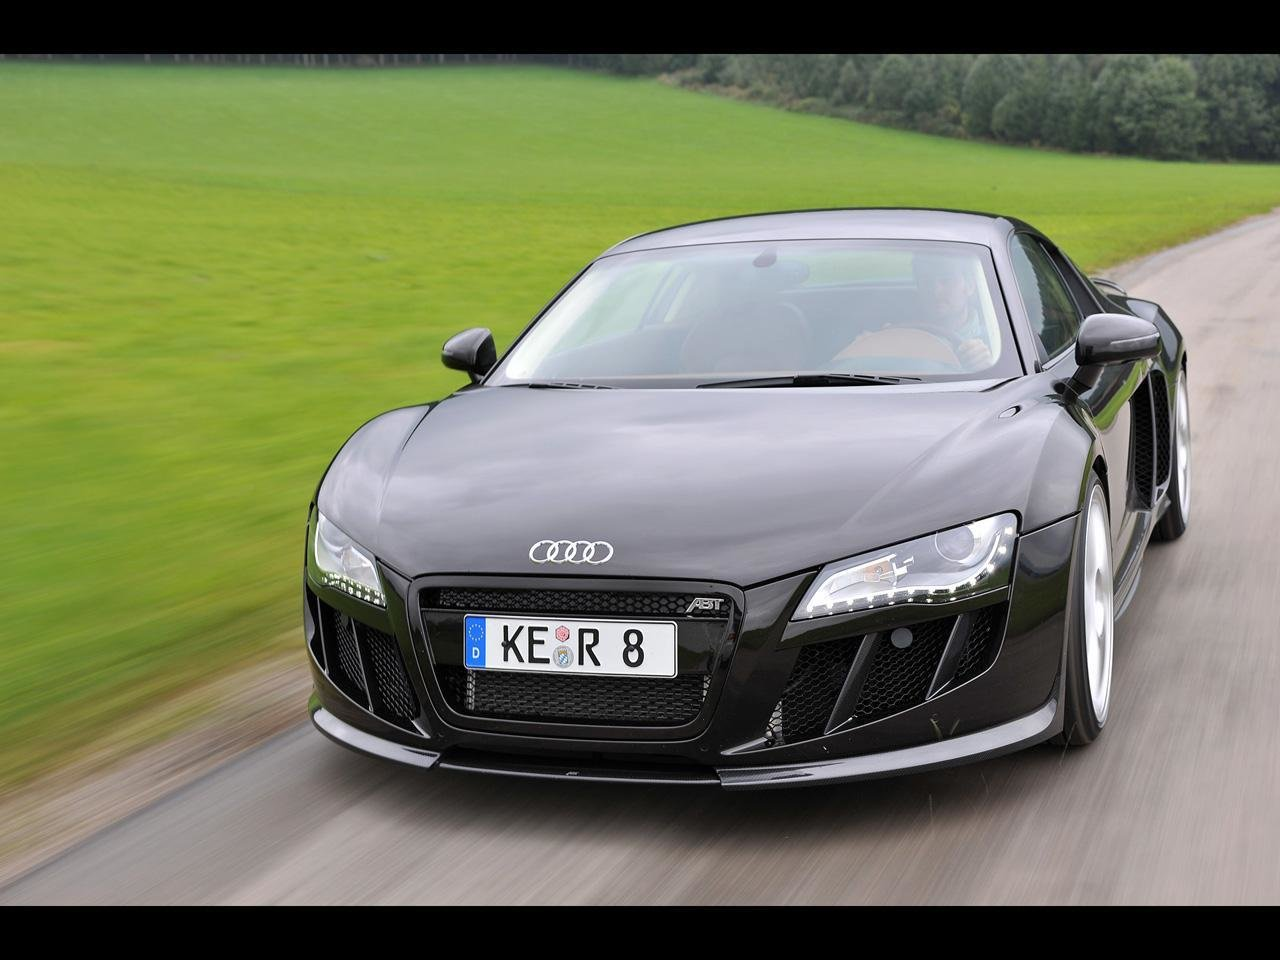 Latest Abt Wallpapers By Cars Wallpapers Net Free Download